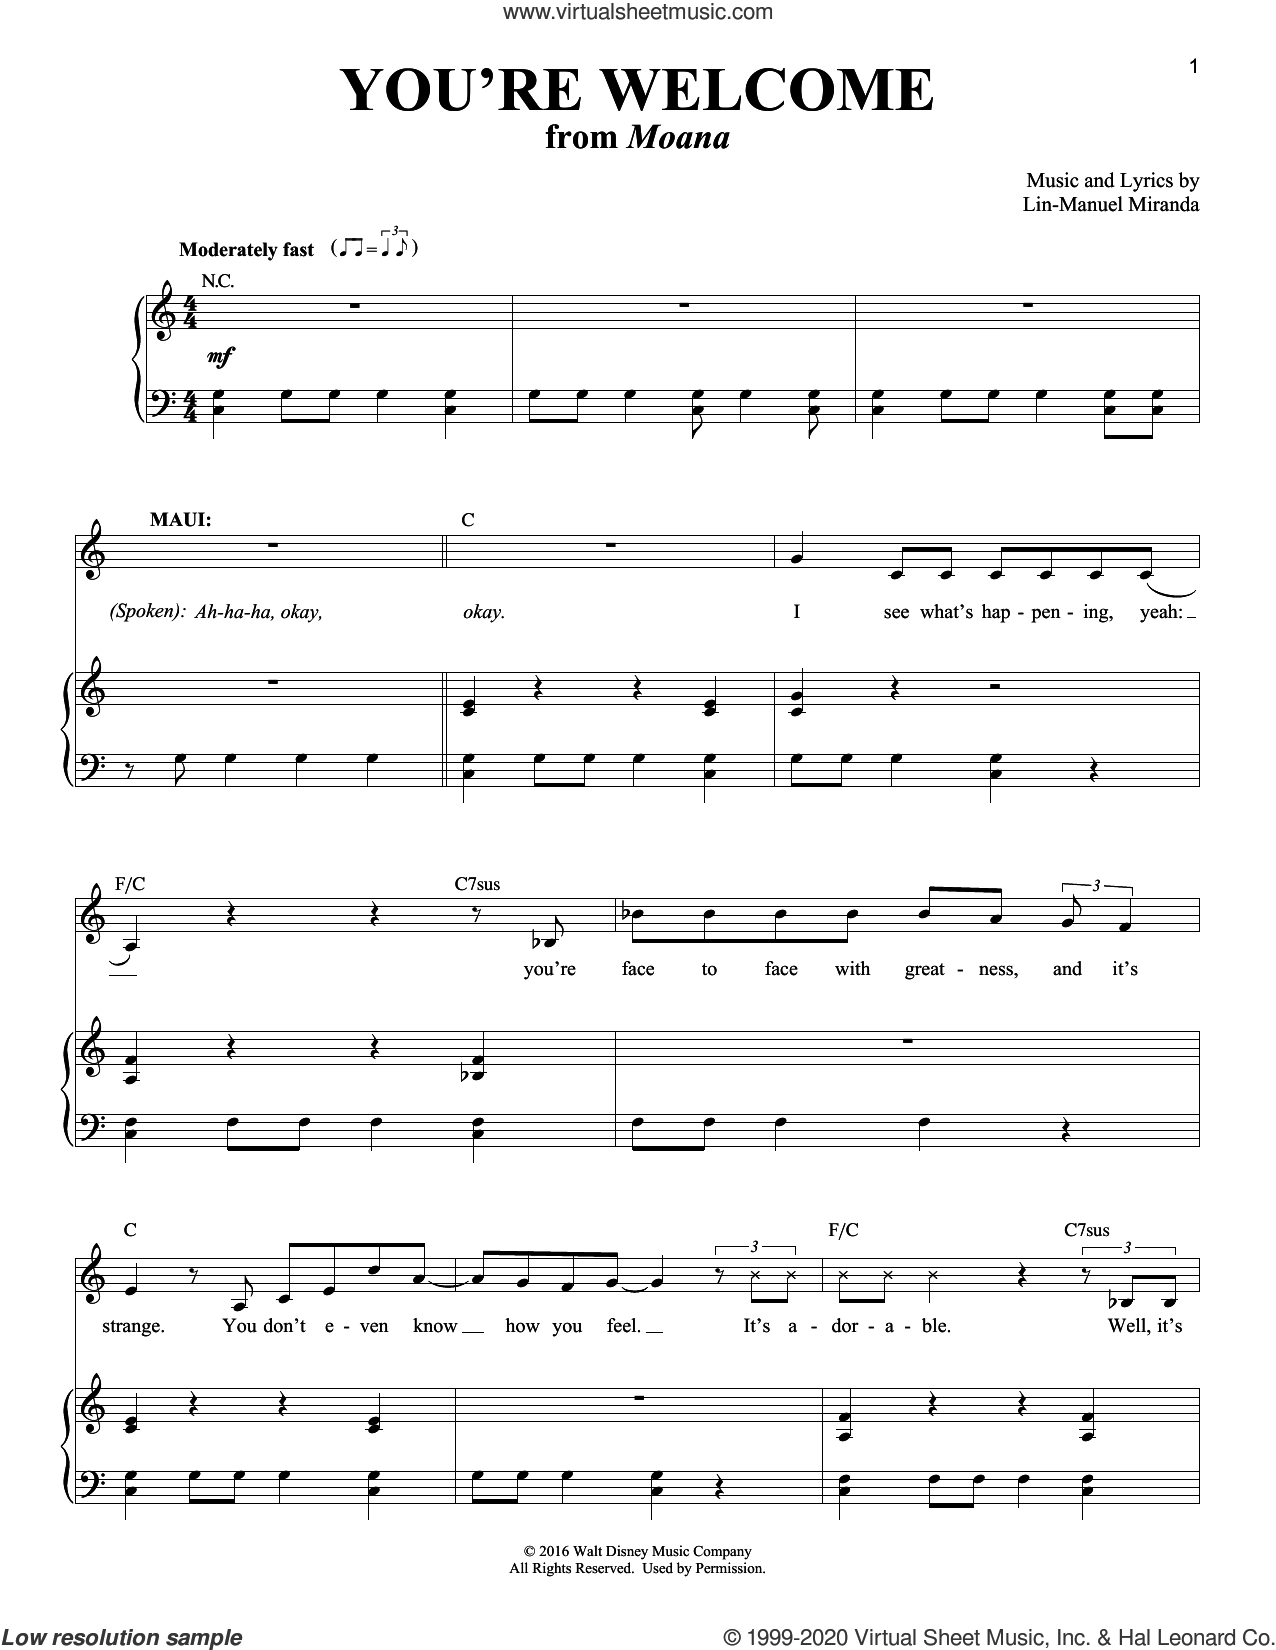 You're Welcome (from Moana) sheet music for voice and piano by Lin-Manuel Miranda, intermediate skill level